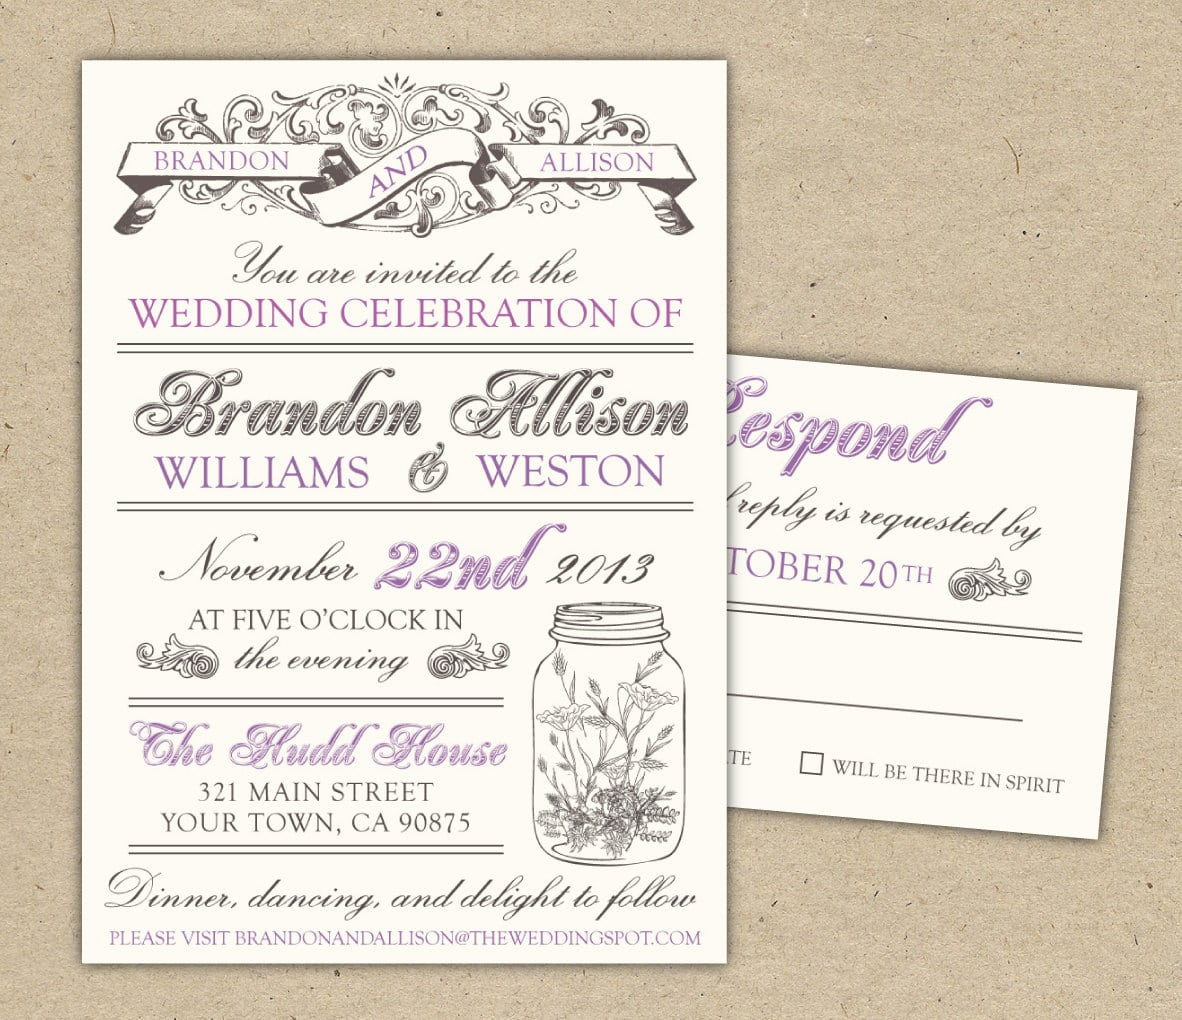 Vintage Wedding Invitation Free Templates - Wedding invitation templates: western wedding invitations templates